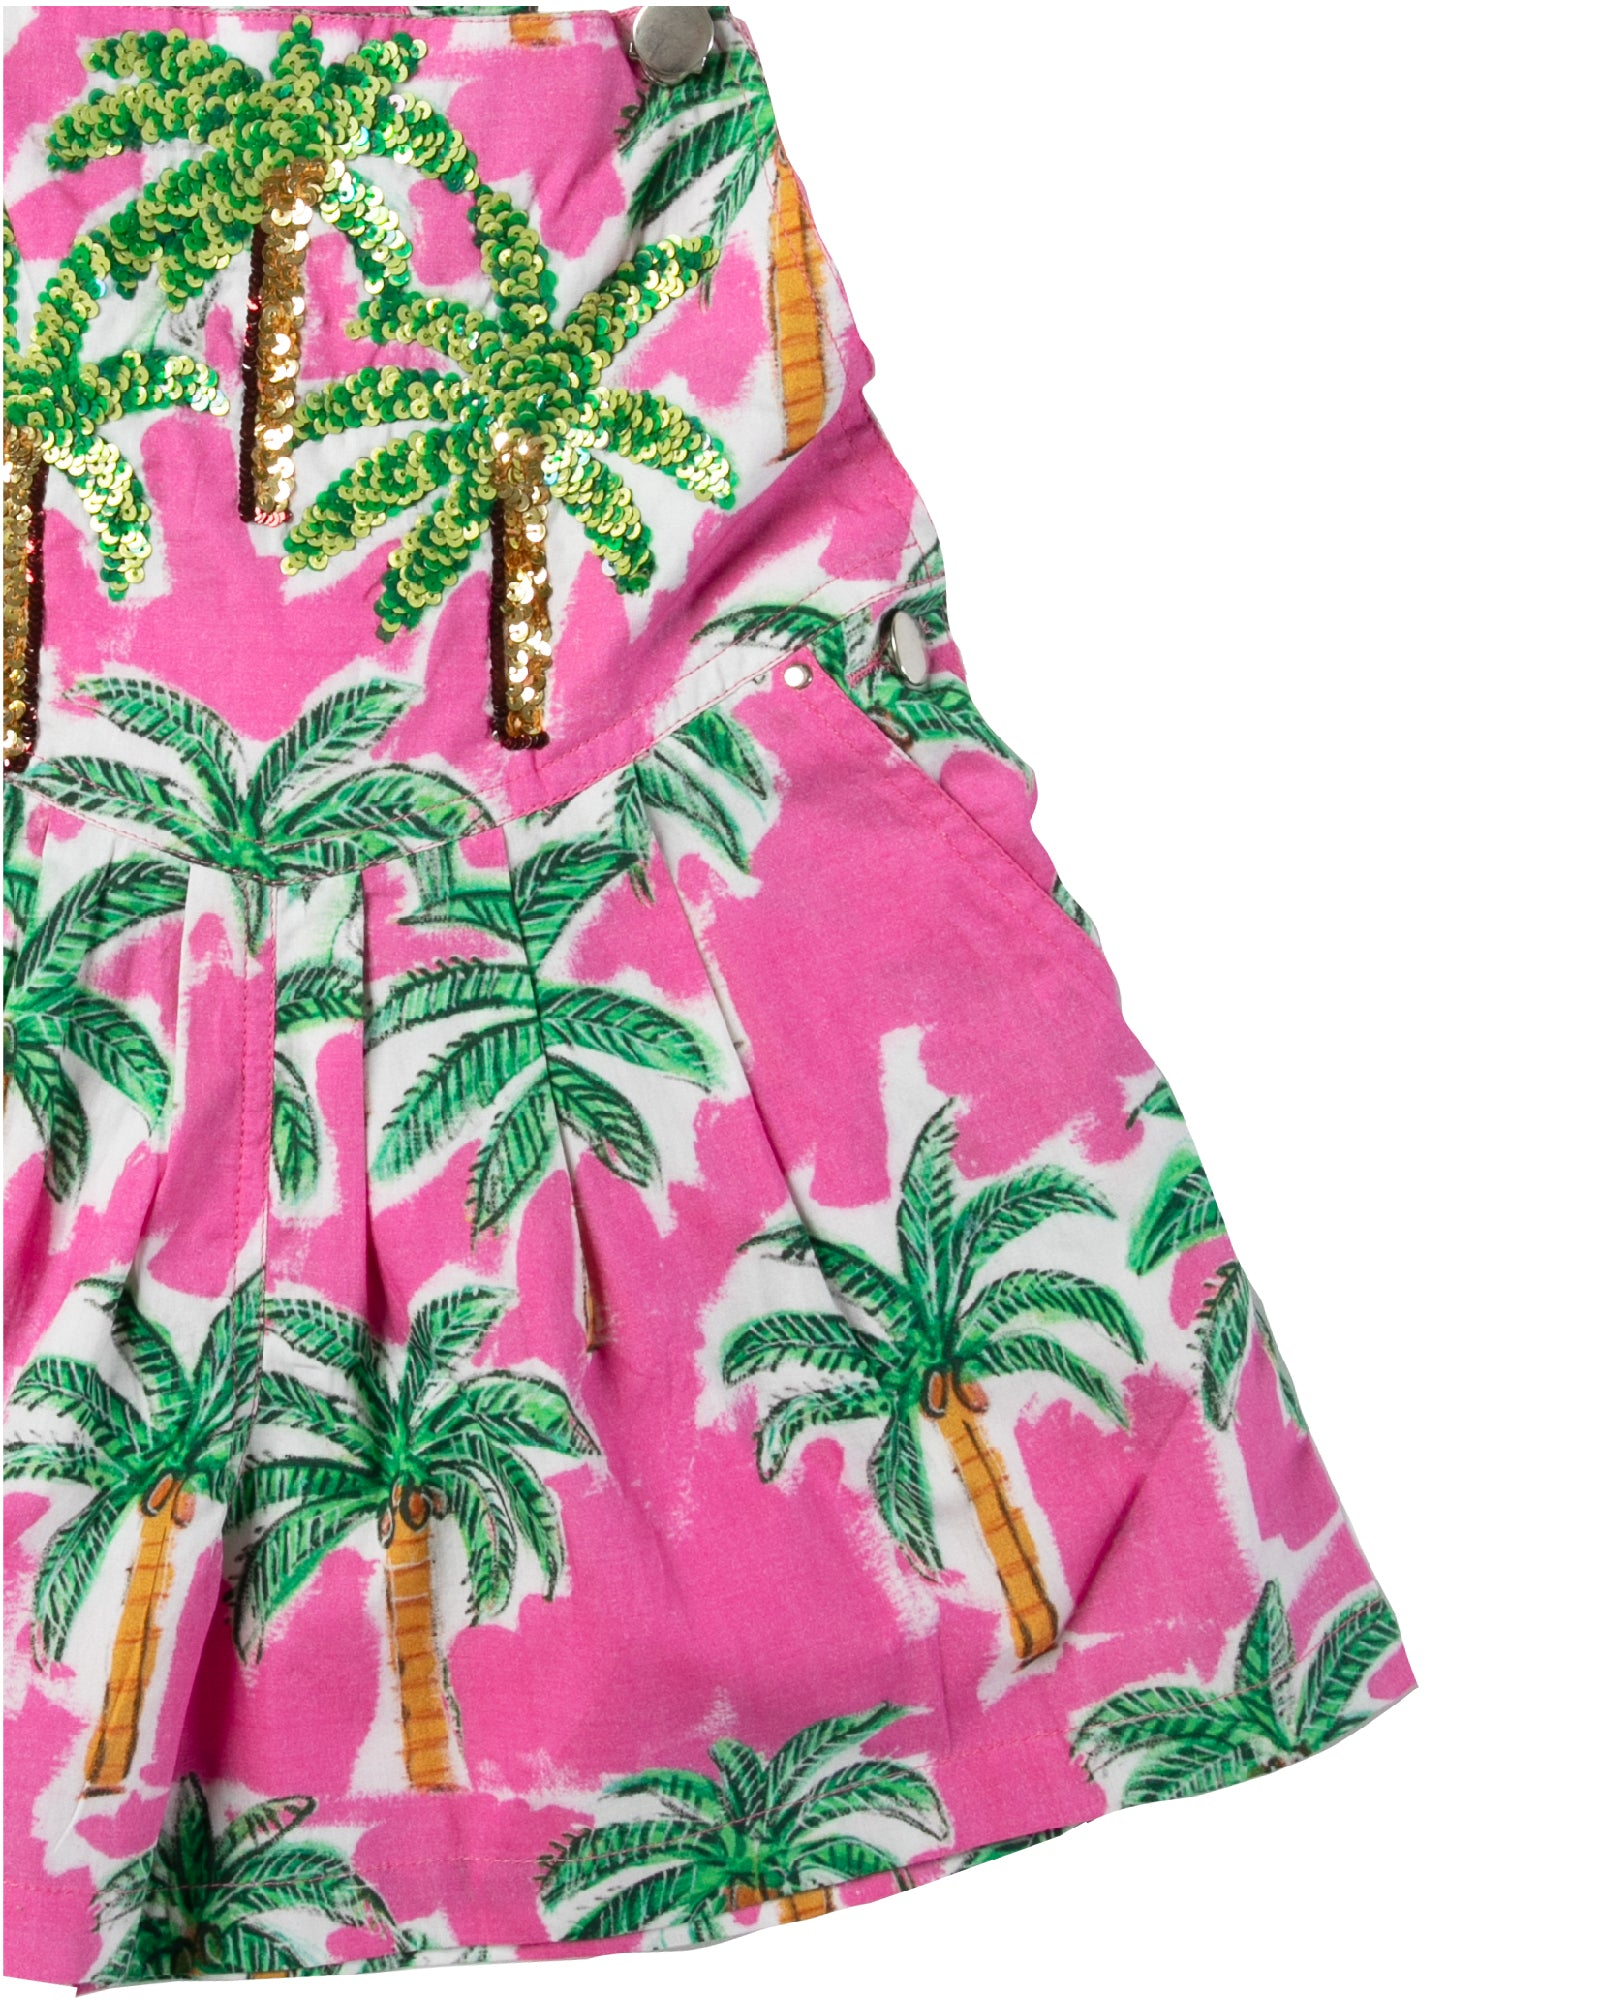 The Hot Pink Palm Kids Overalls by Bonita Bambino - DETAIL